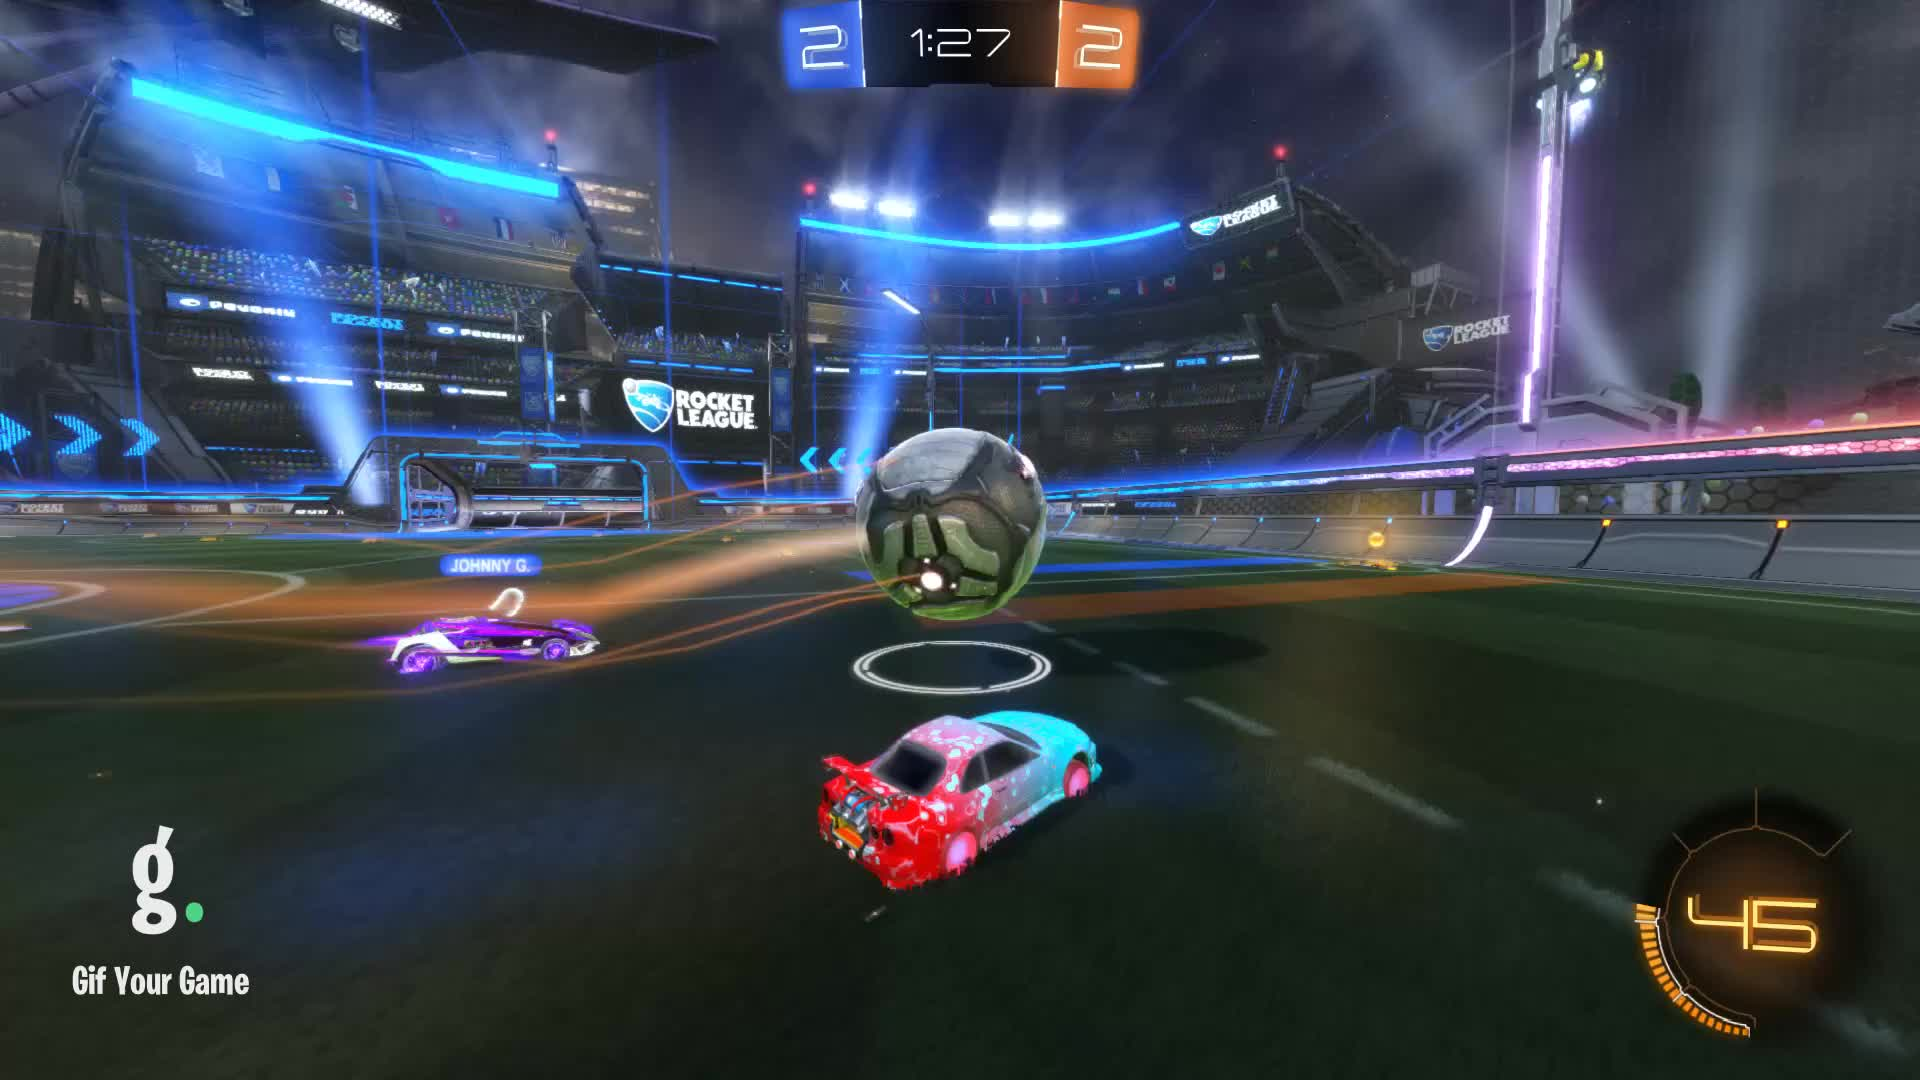 Gif Your Game, GifYourGame, Goal, Kryptiç, Rocket League, RocketLeague, Goal 5: Kryptiç GIFs